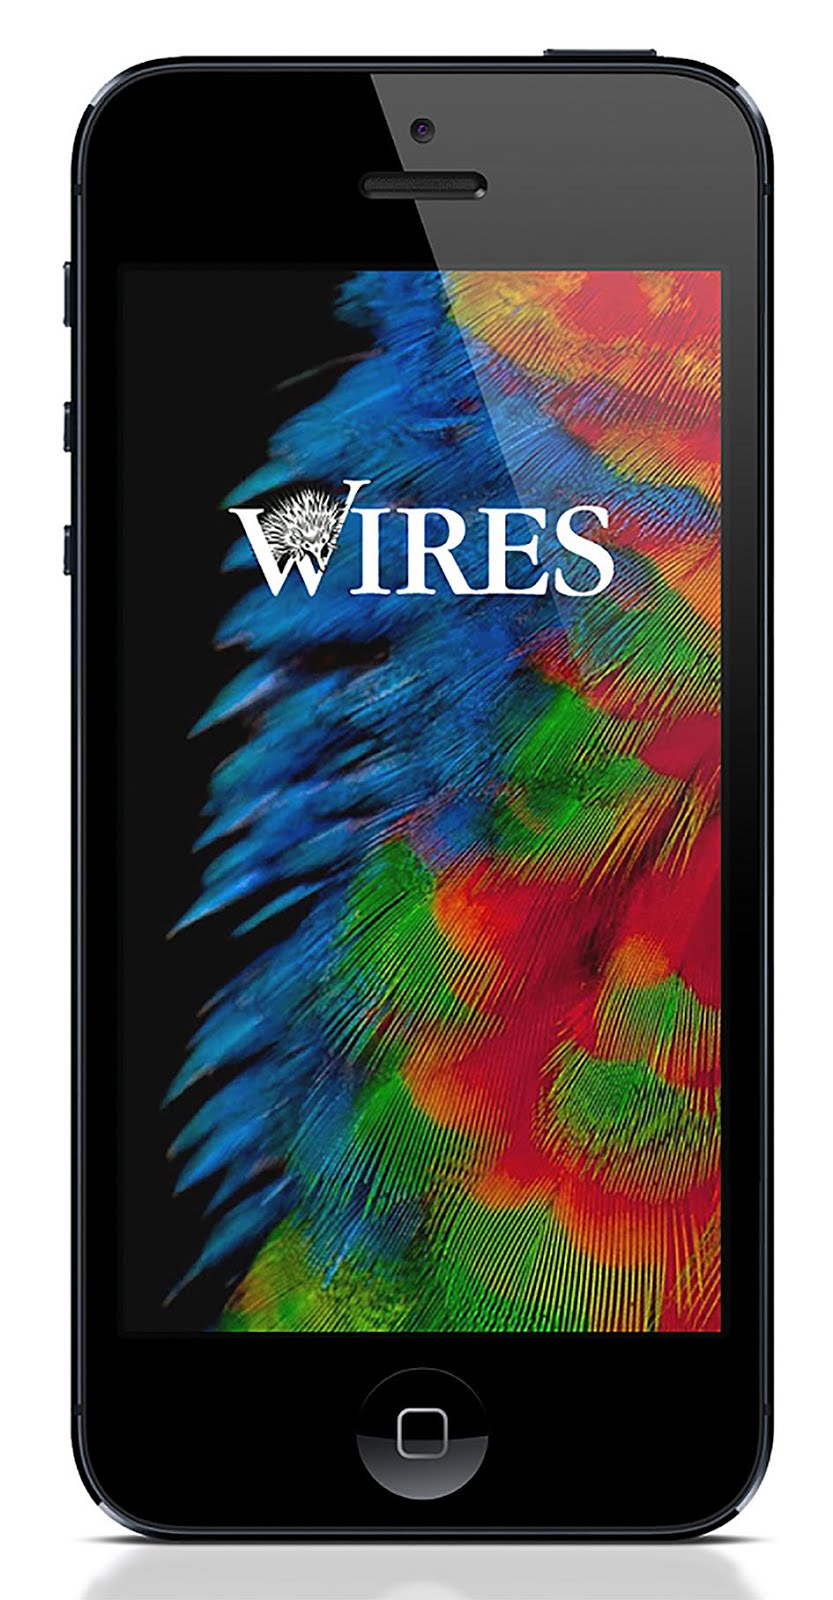 WIRES app front screen - 300dpi (3).jpg